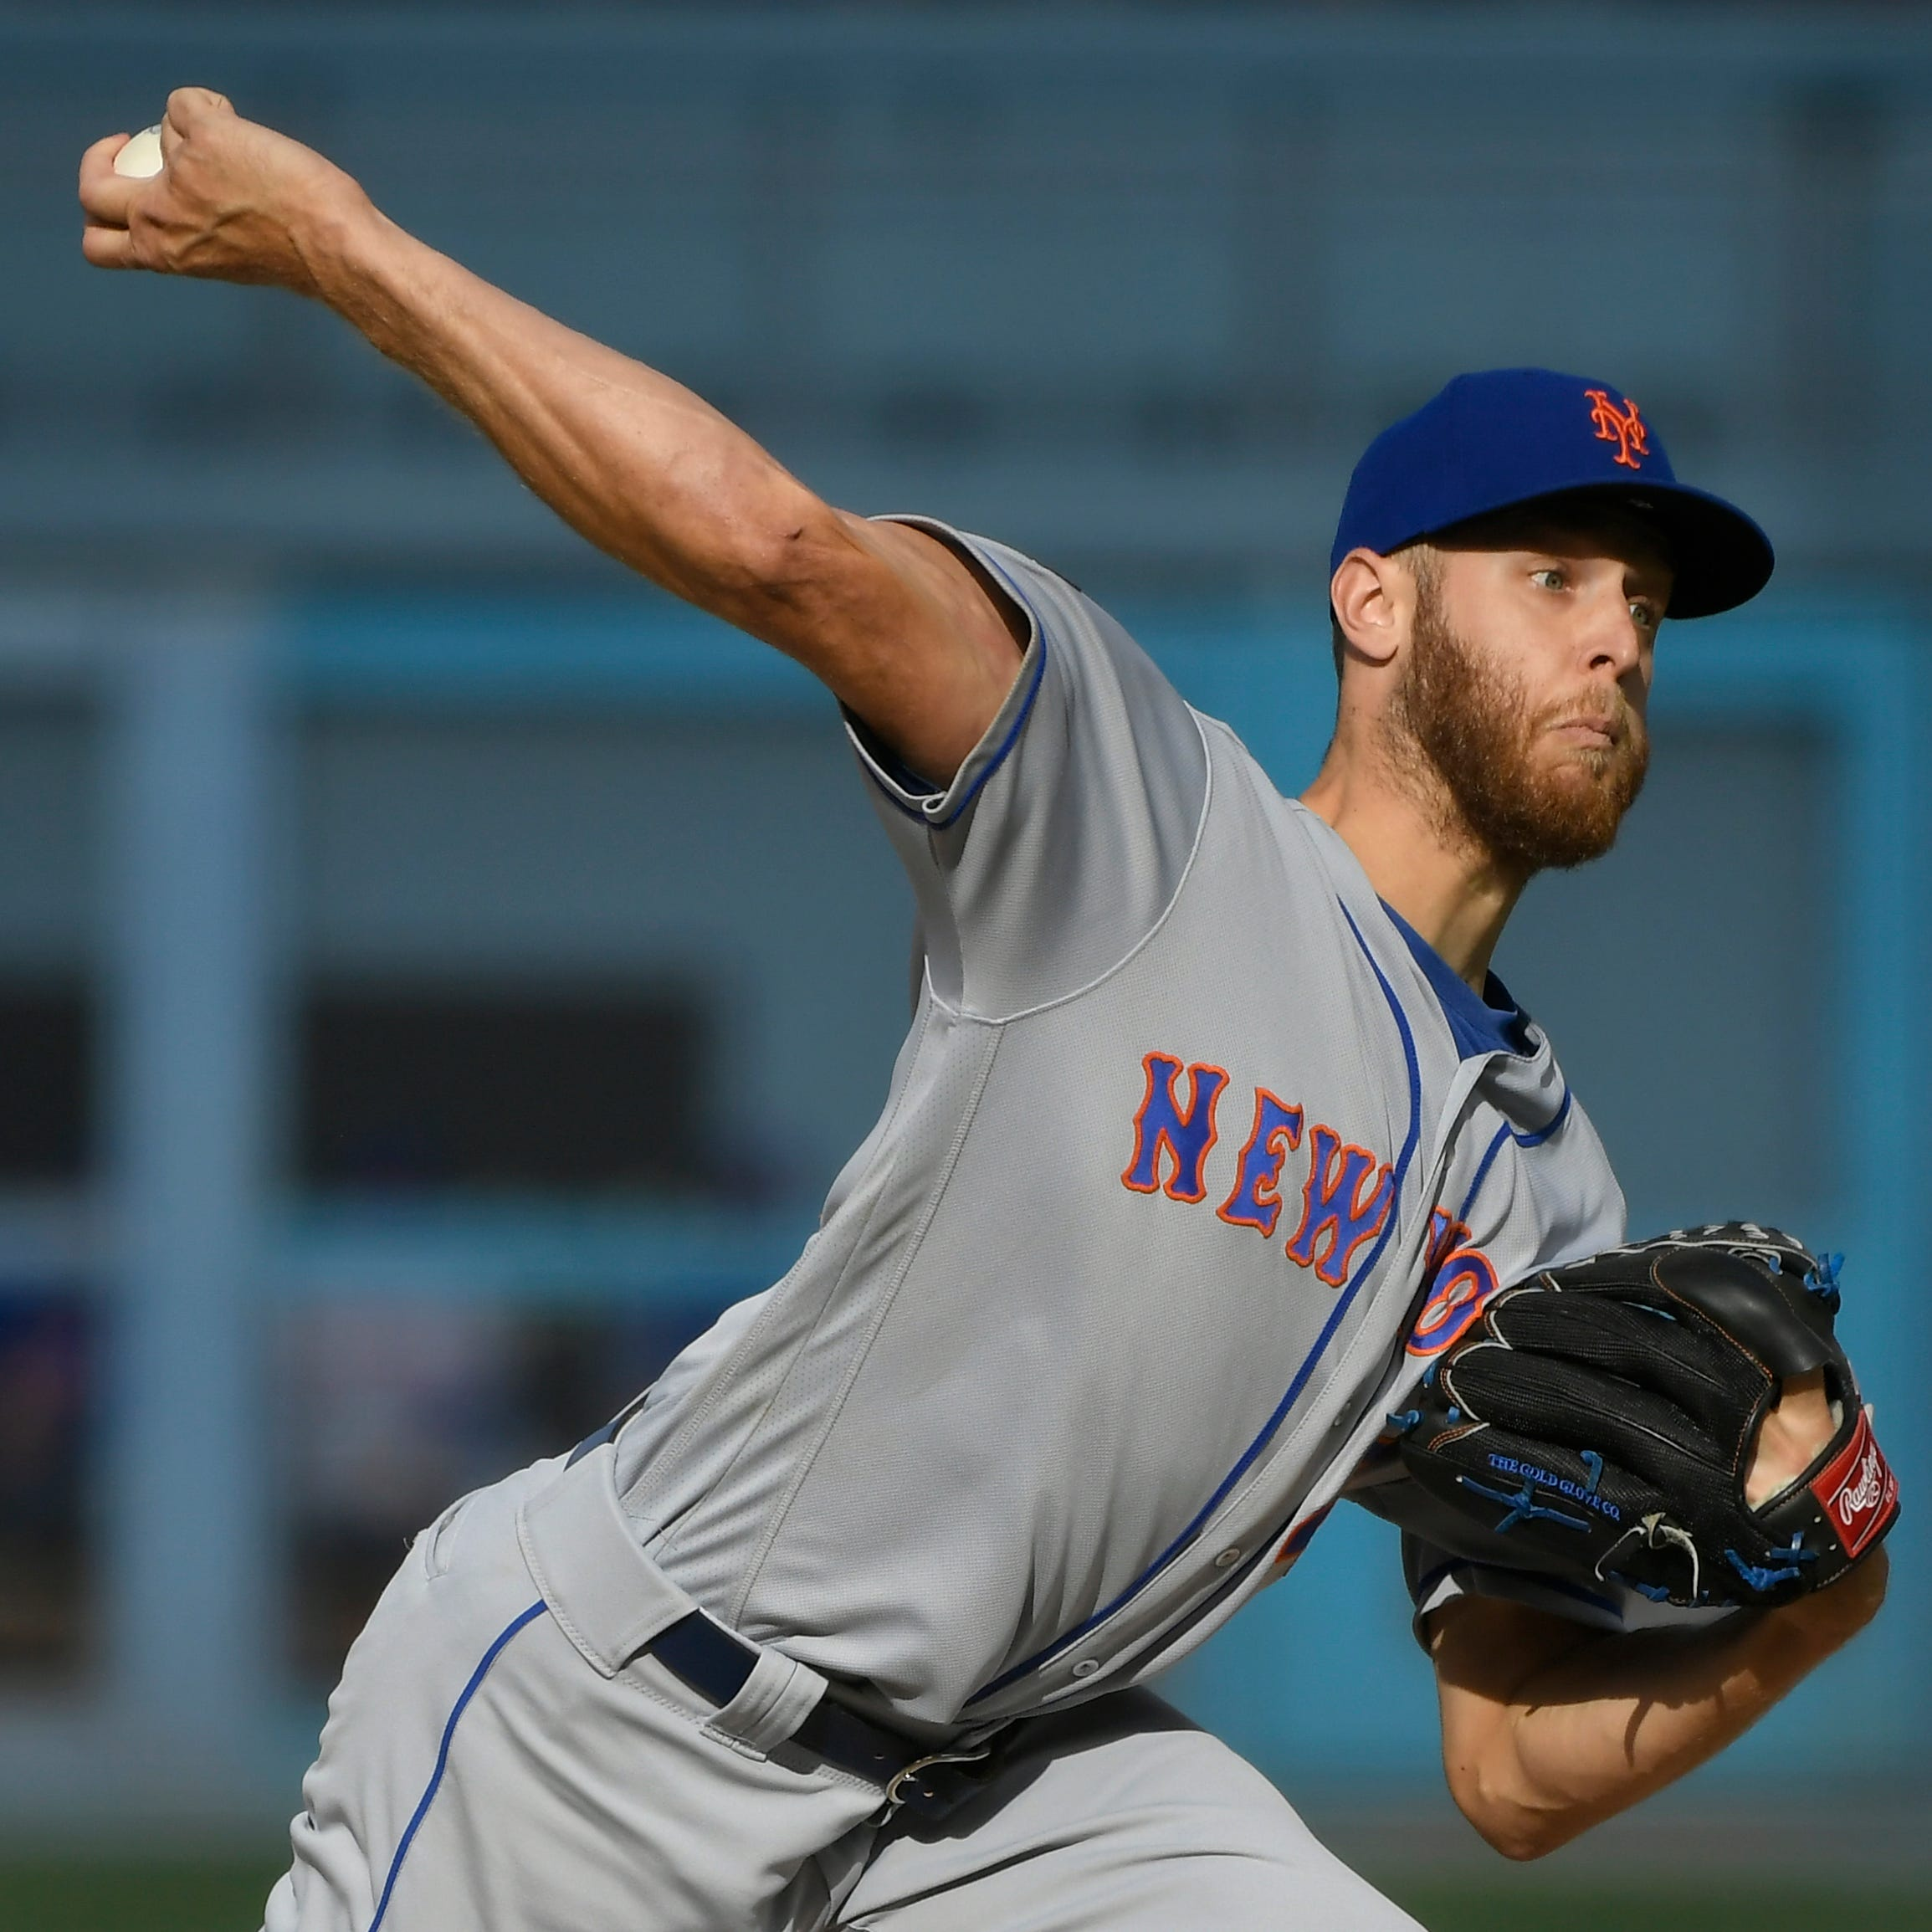 Zack Wheeler could be shut down by Mets due to innings pitched